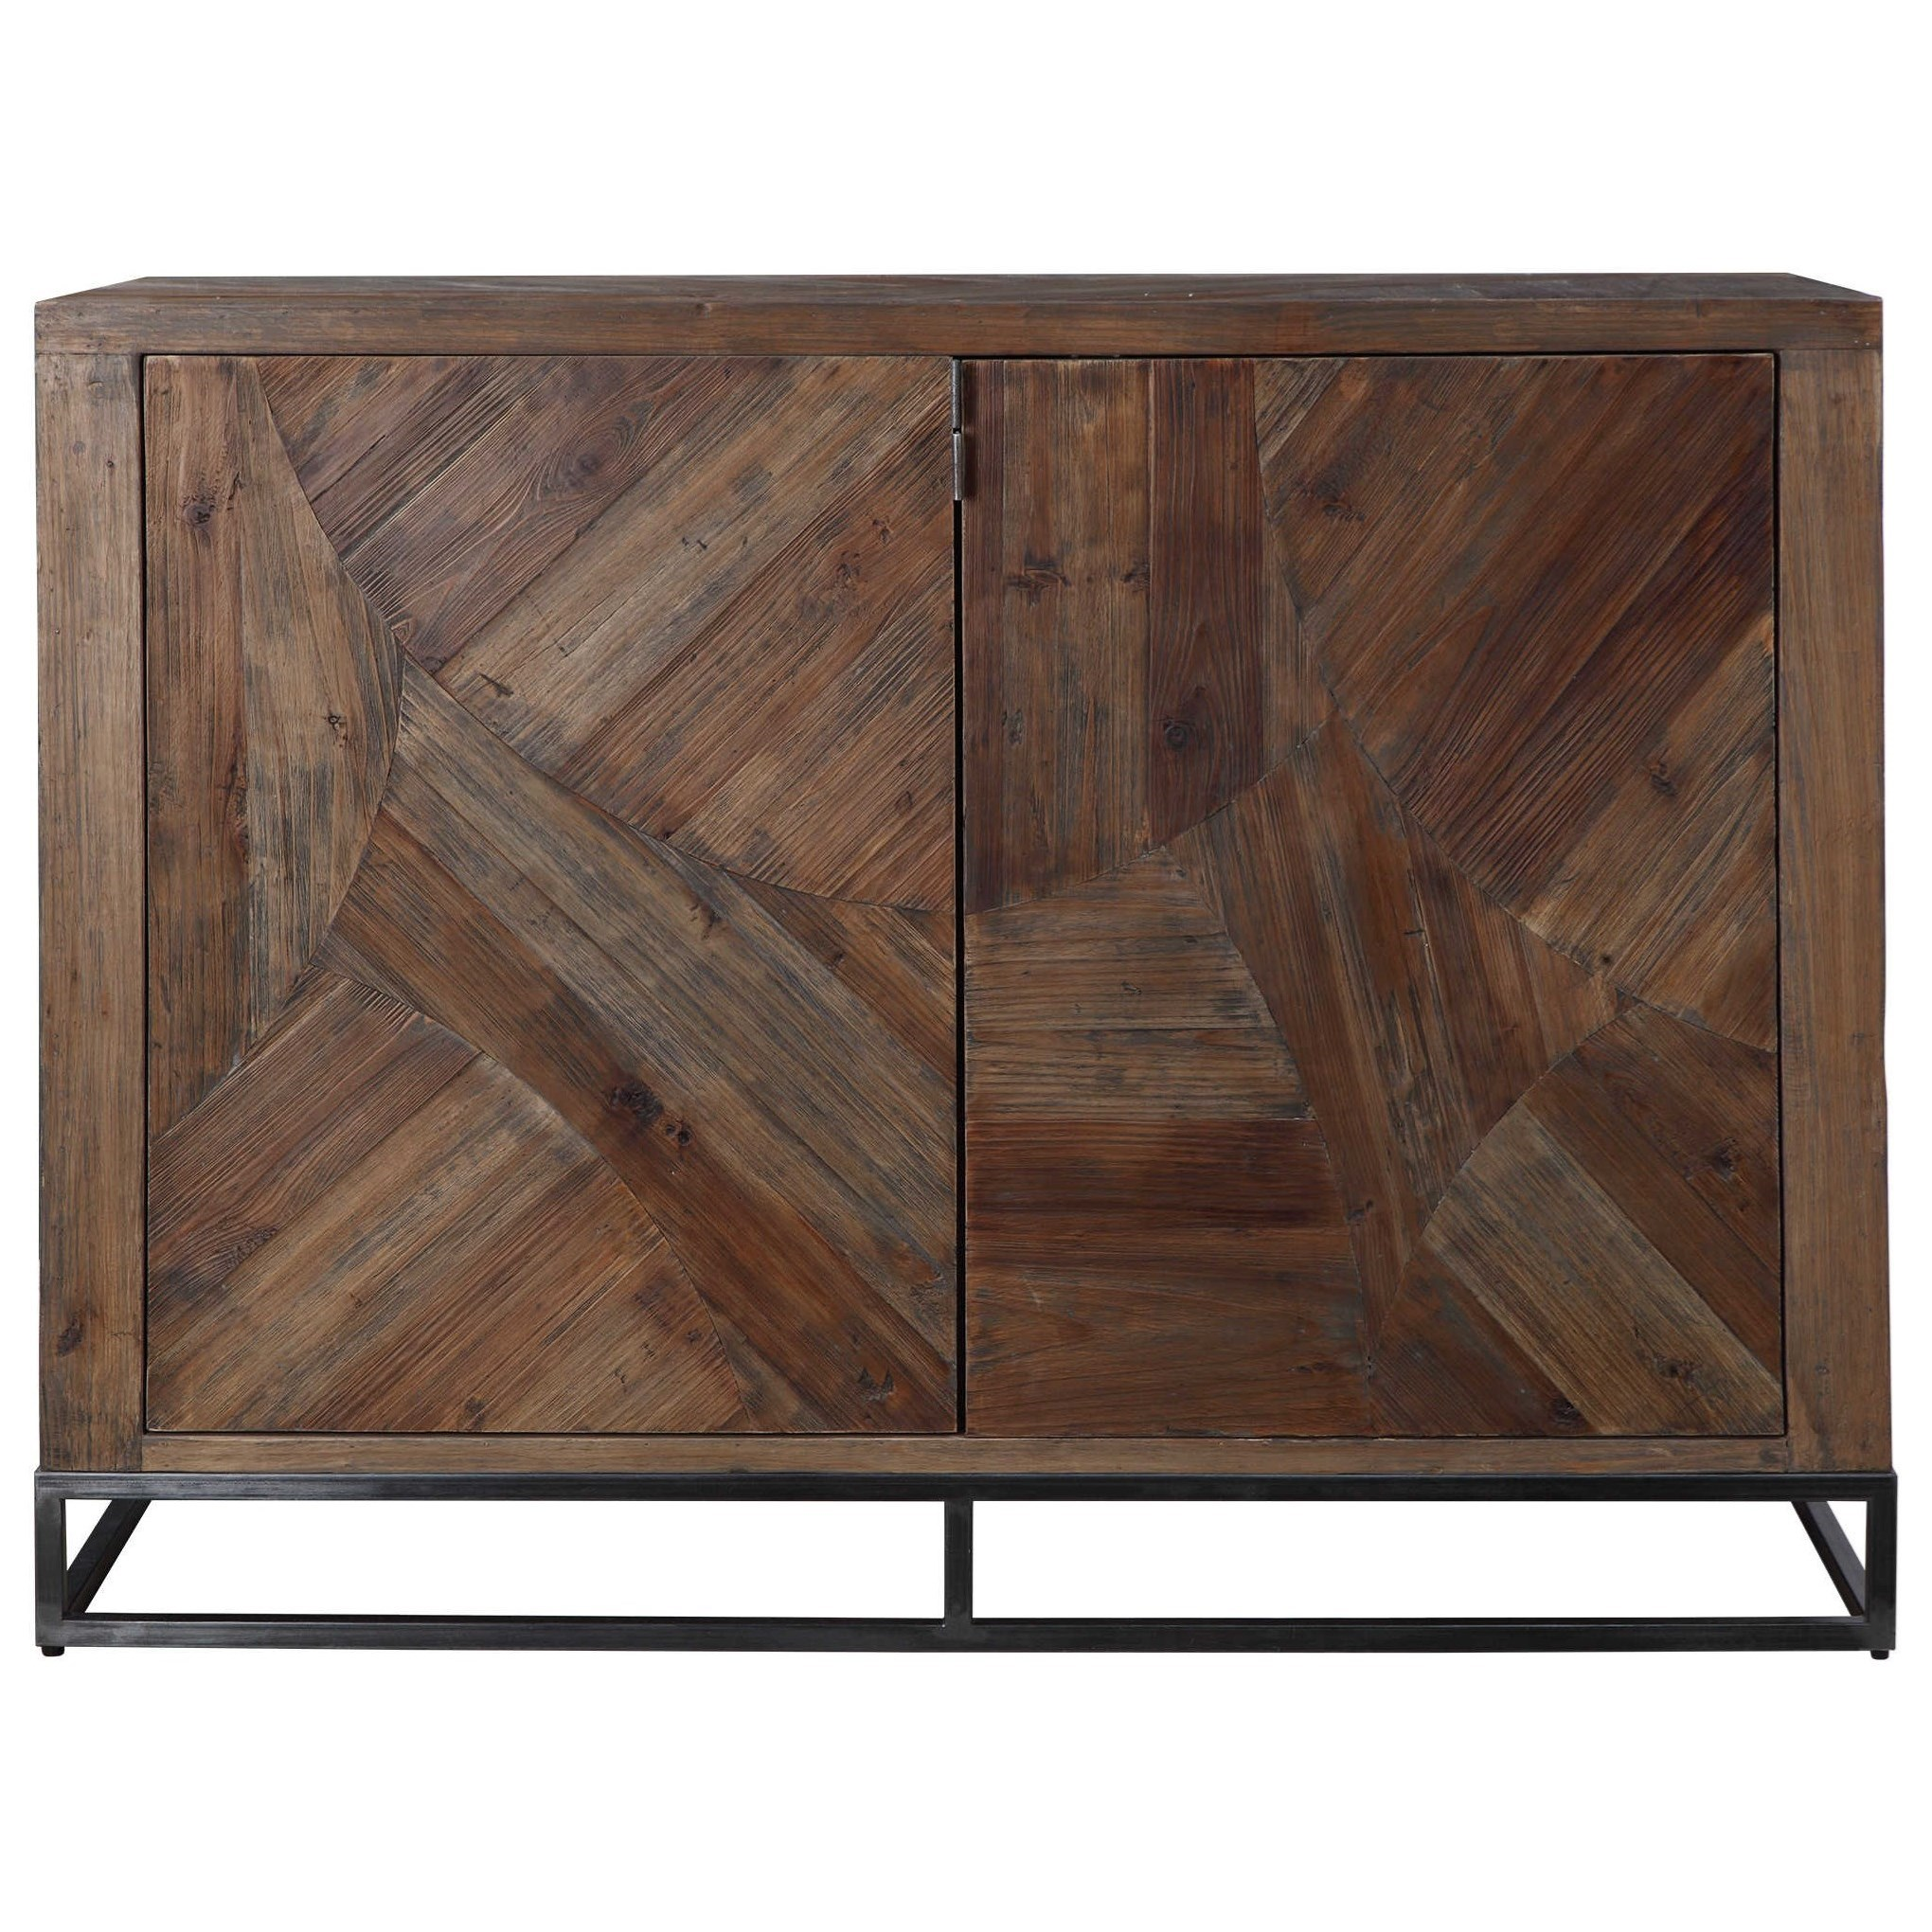 Accent Furniture - Chests Evros Reclaimed Wood 2-Door Cabinet by Uttermost at Upper Room Home Furnishings